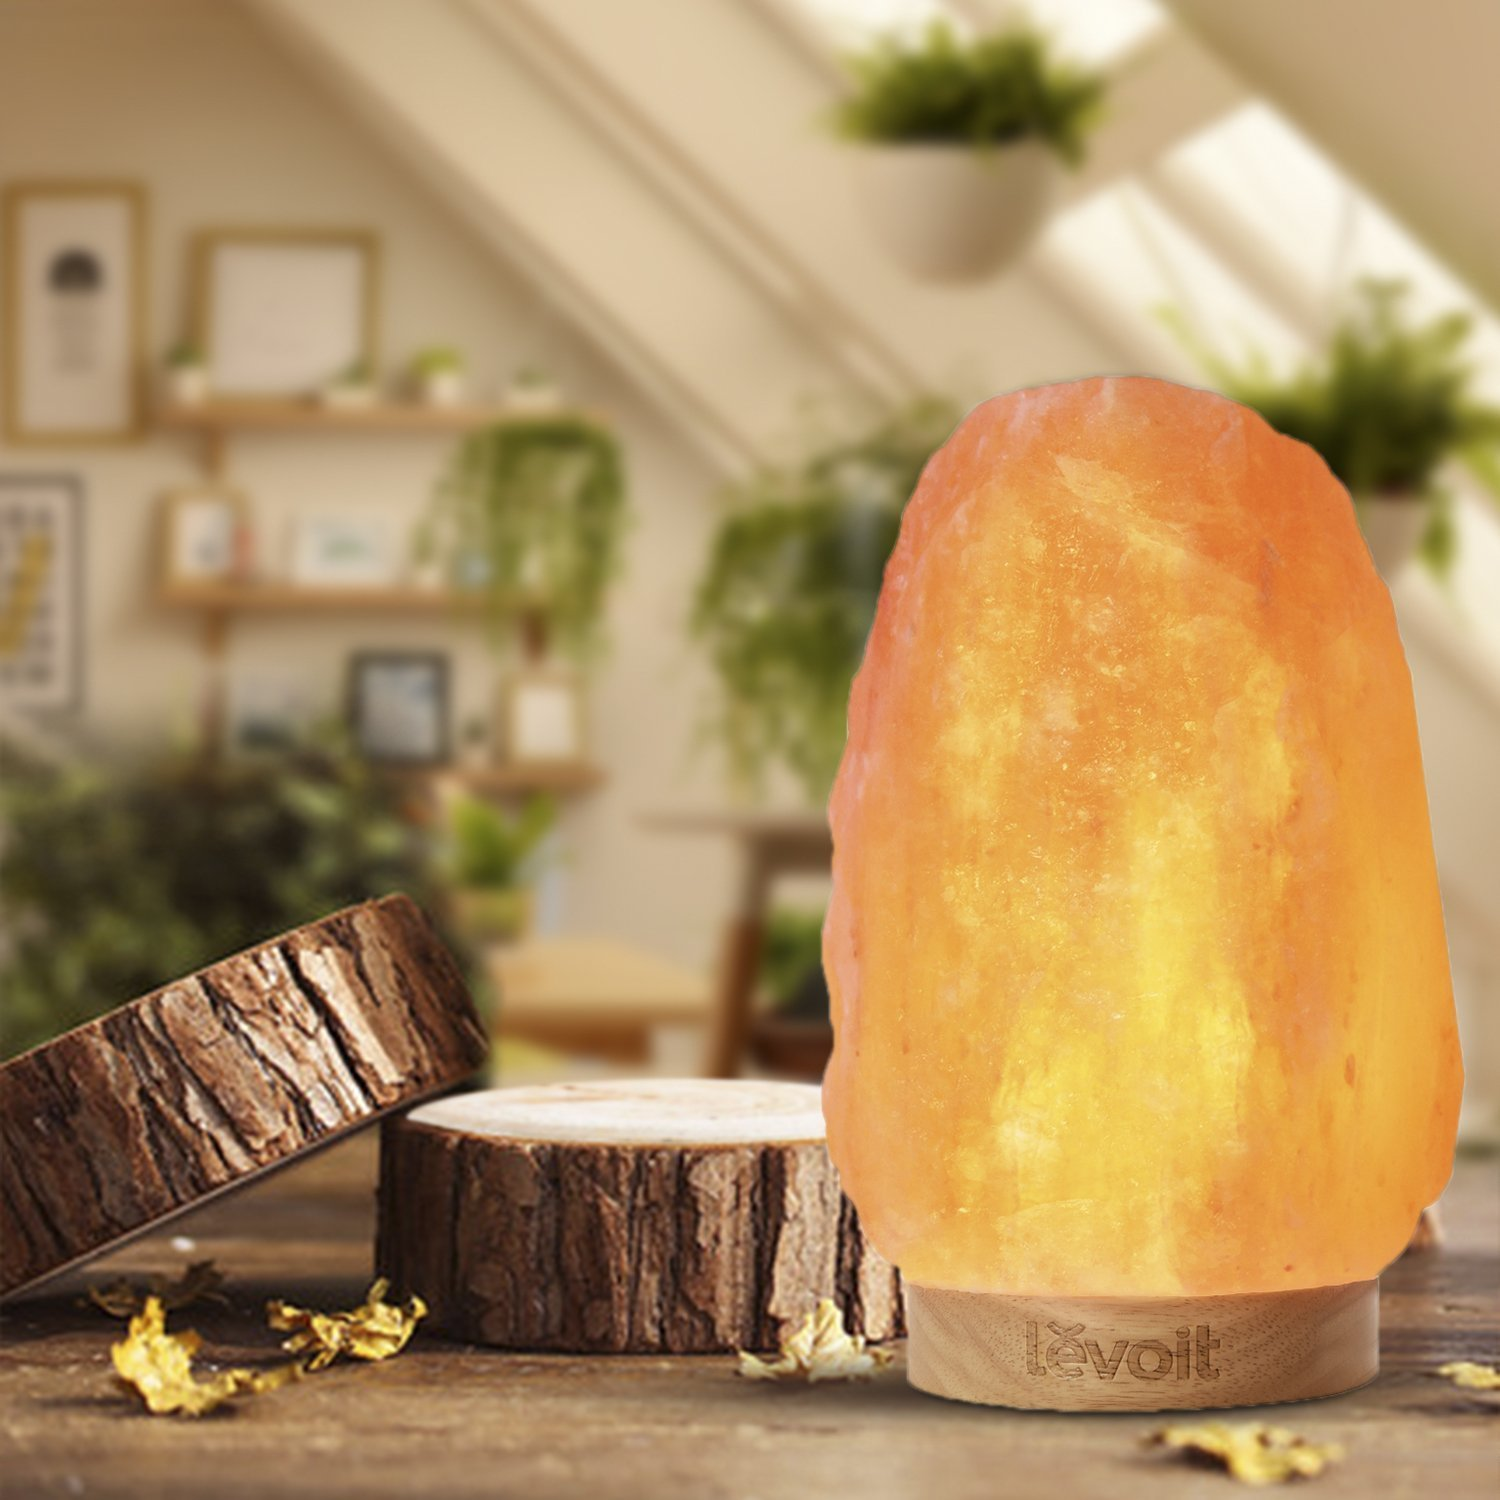 Levoit Salt Lamp, Himalayan / Hymilain Sea Salt Lamps, Pink Crystal Large Salt Rock Lamp, Night Light, Real Rubber Wood Base, Dimmable Touch Switch, Luxury Gift Box(UL-Listed, 2 Extra Original Bulbs) by LEVOIT (Image #3)